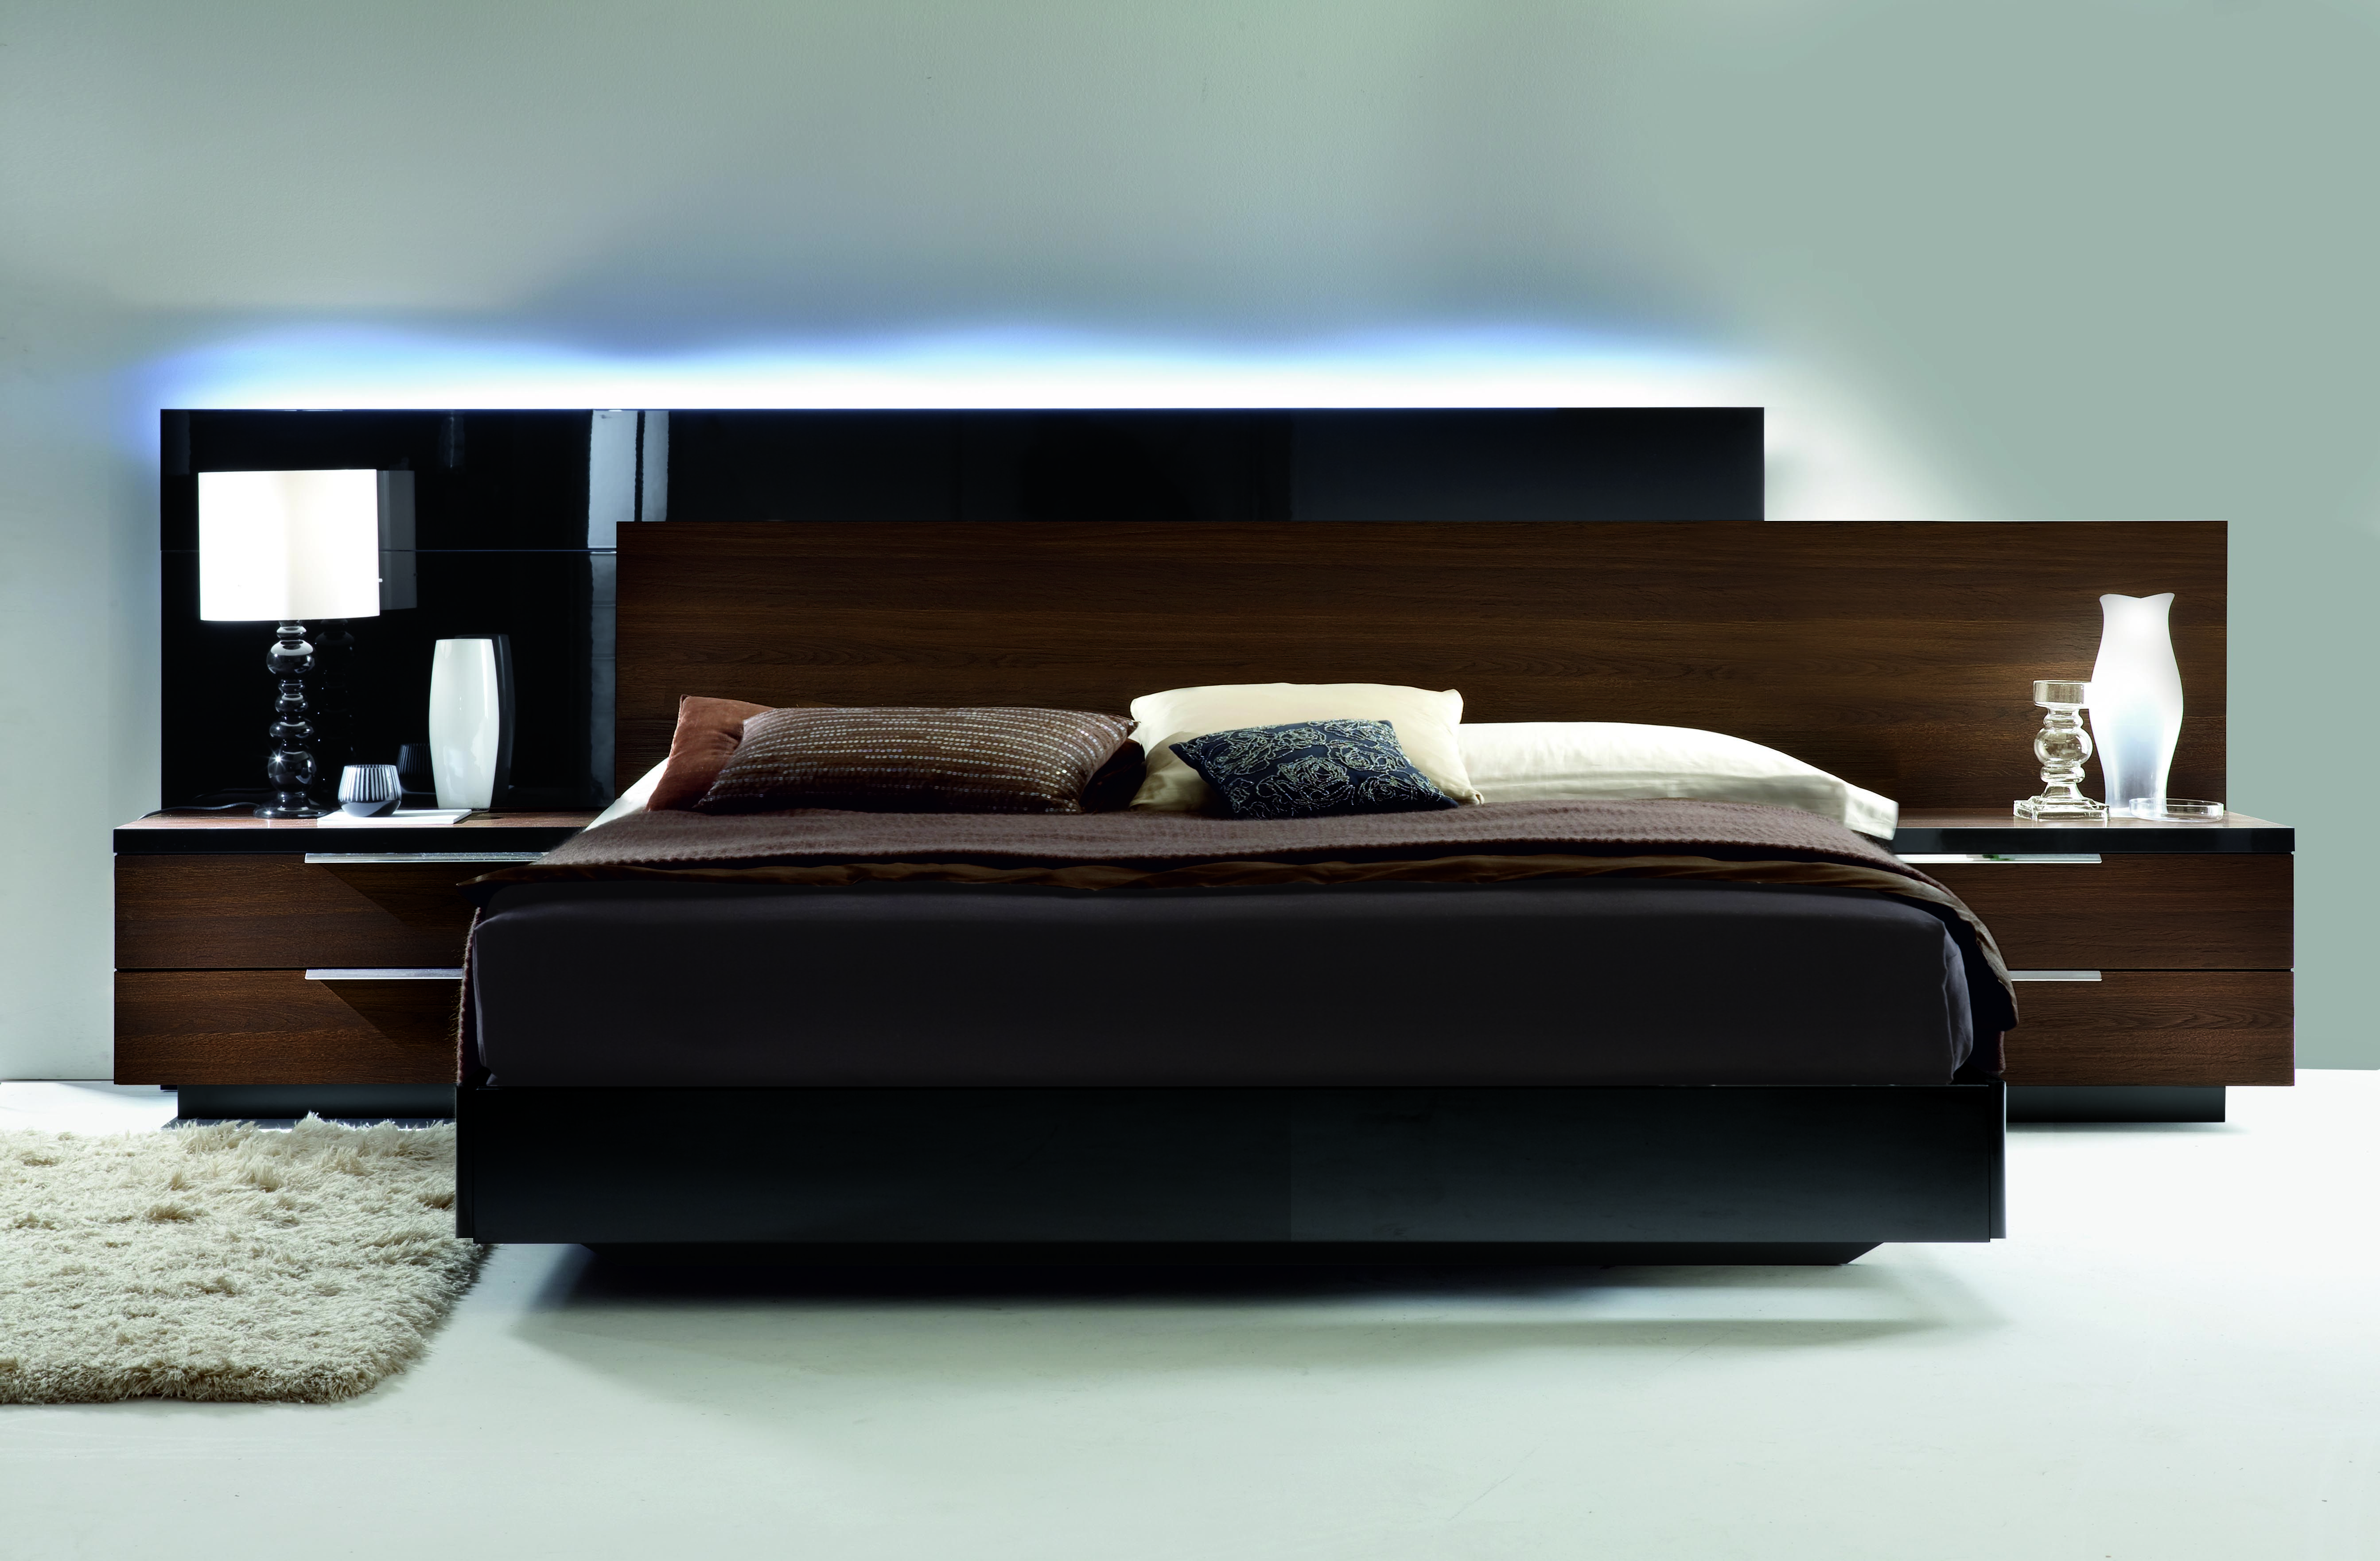 We love this modern collection. The contrast between the black